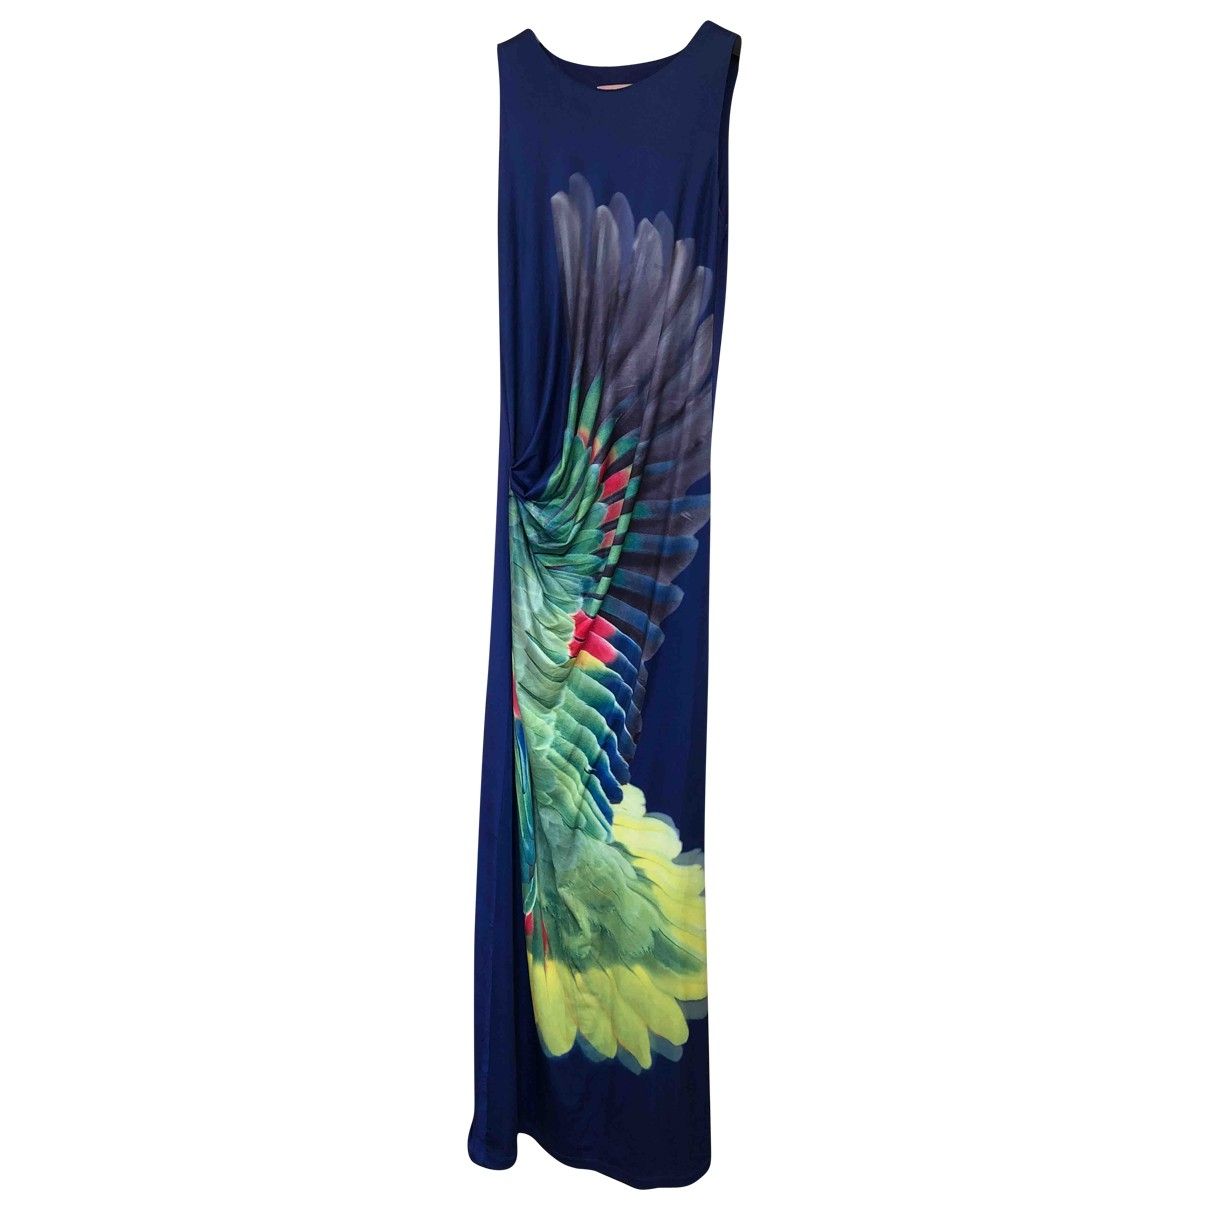 Ted Baker \N Blue dress for Women 1 0-5